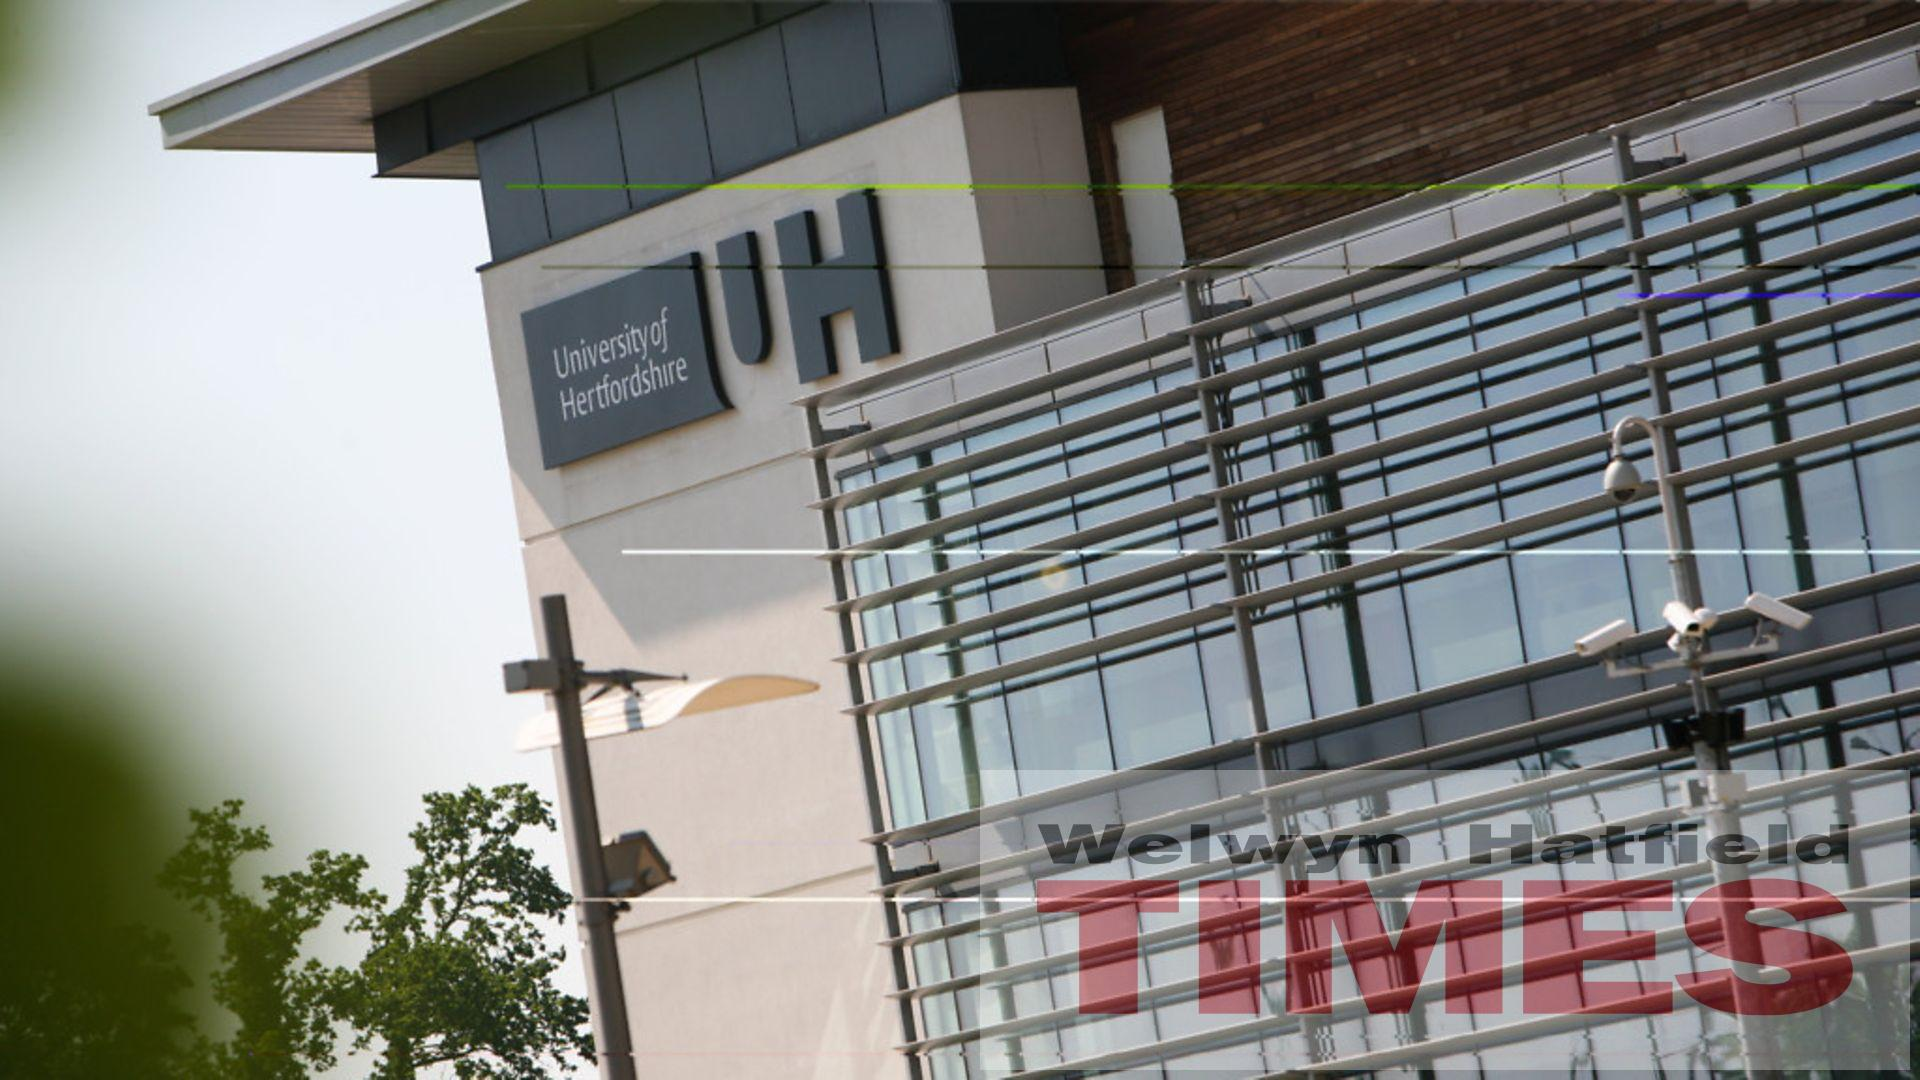 Petition opposes plans for online classes at Herts Uni